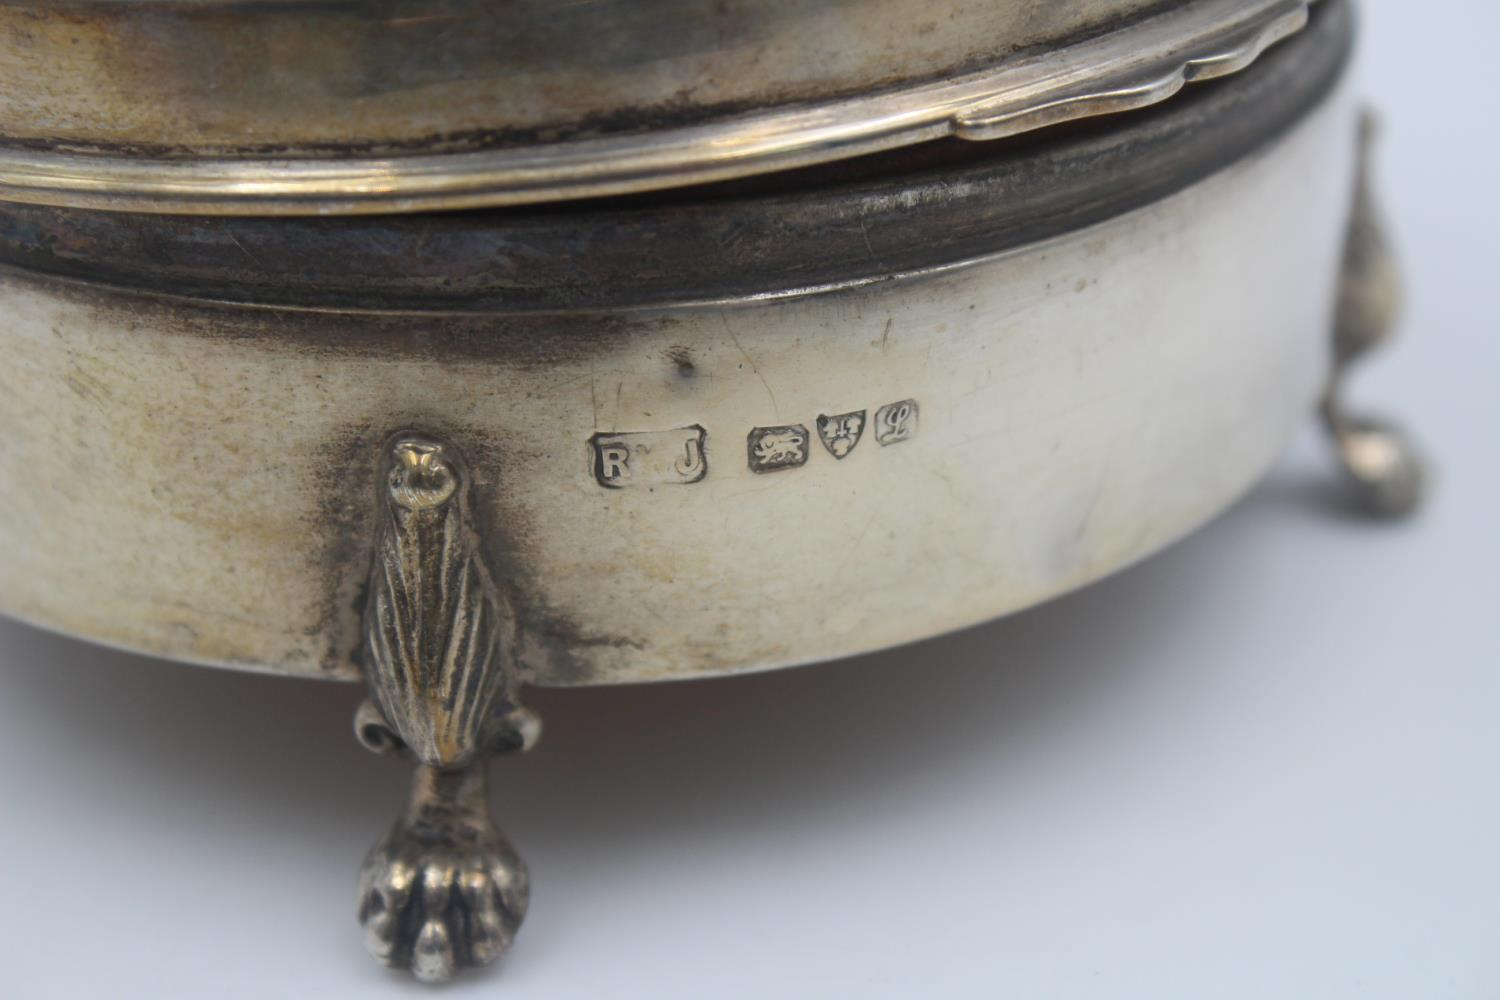 Antique Hallmarked 1912 Chester STERLING SILVER Jewellery / Trinket Box (135g) - Image 3 of 4